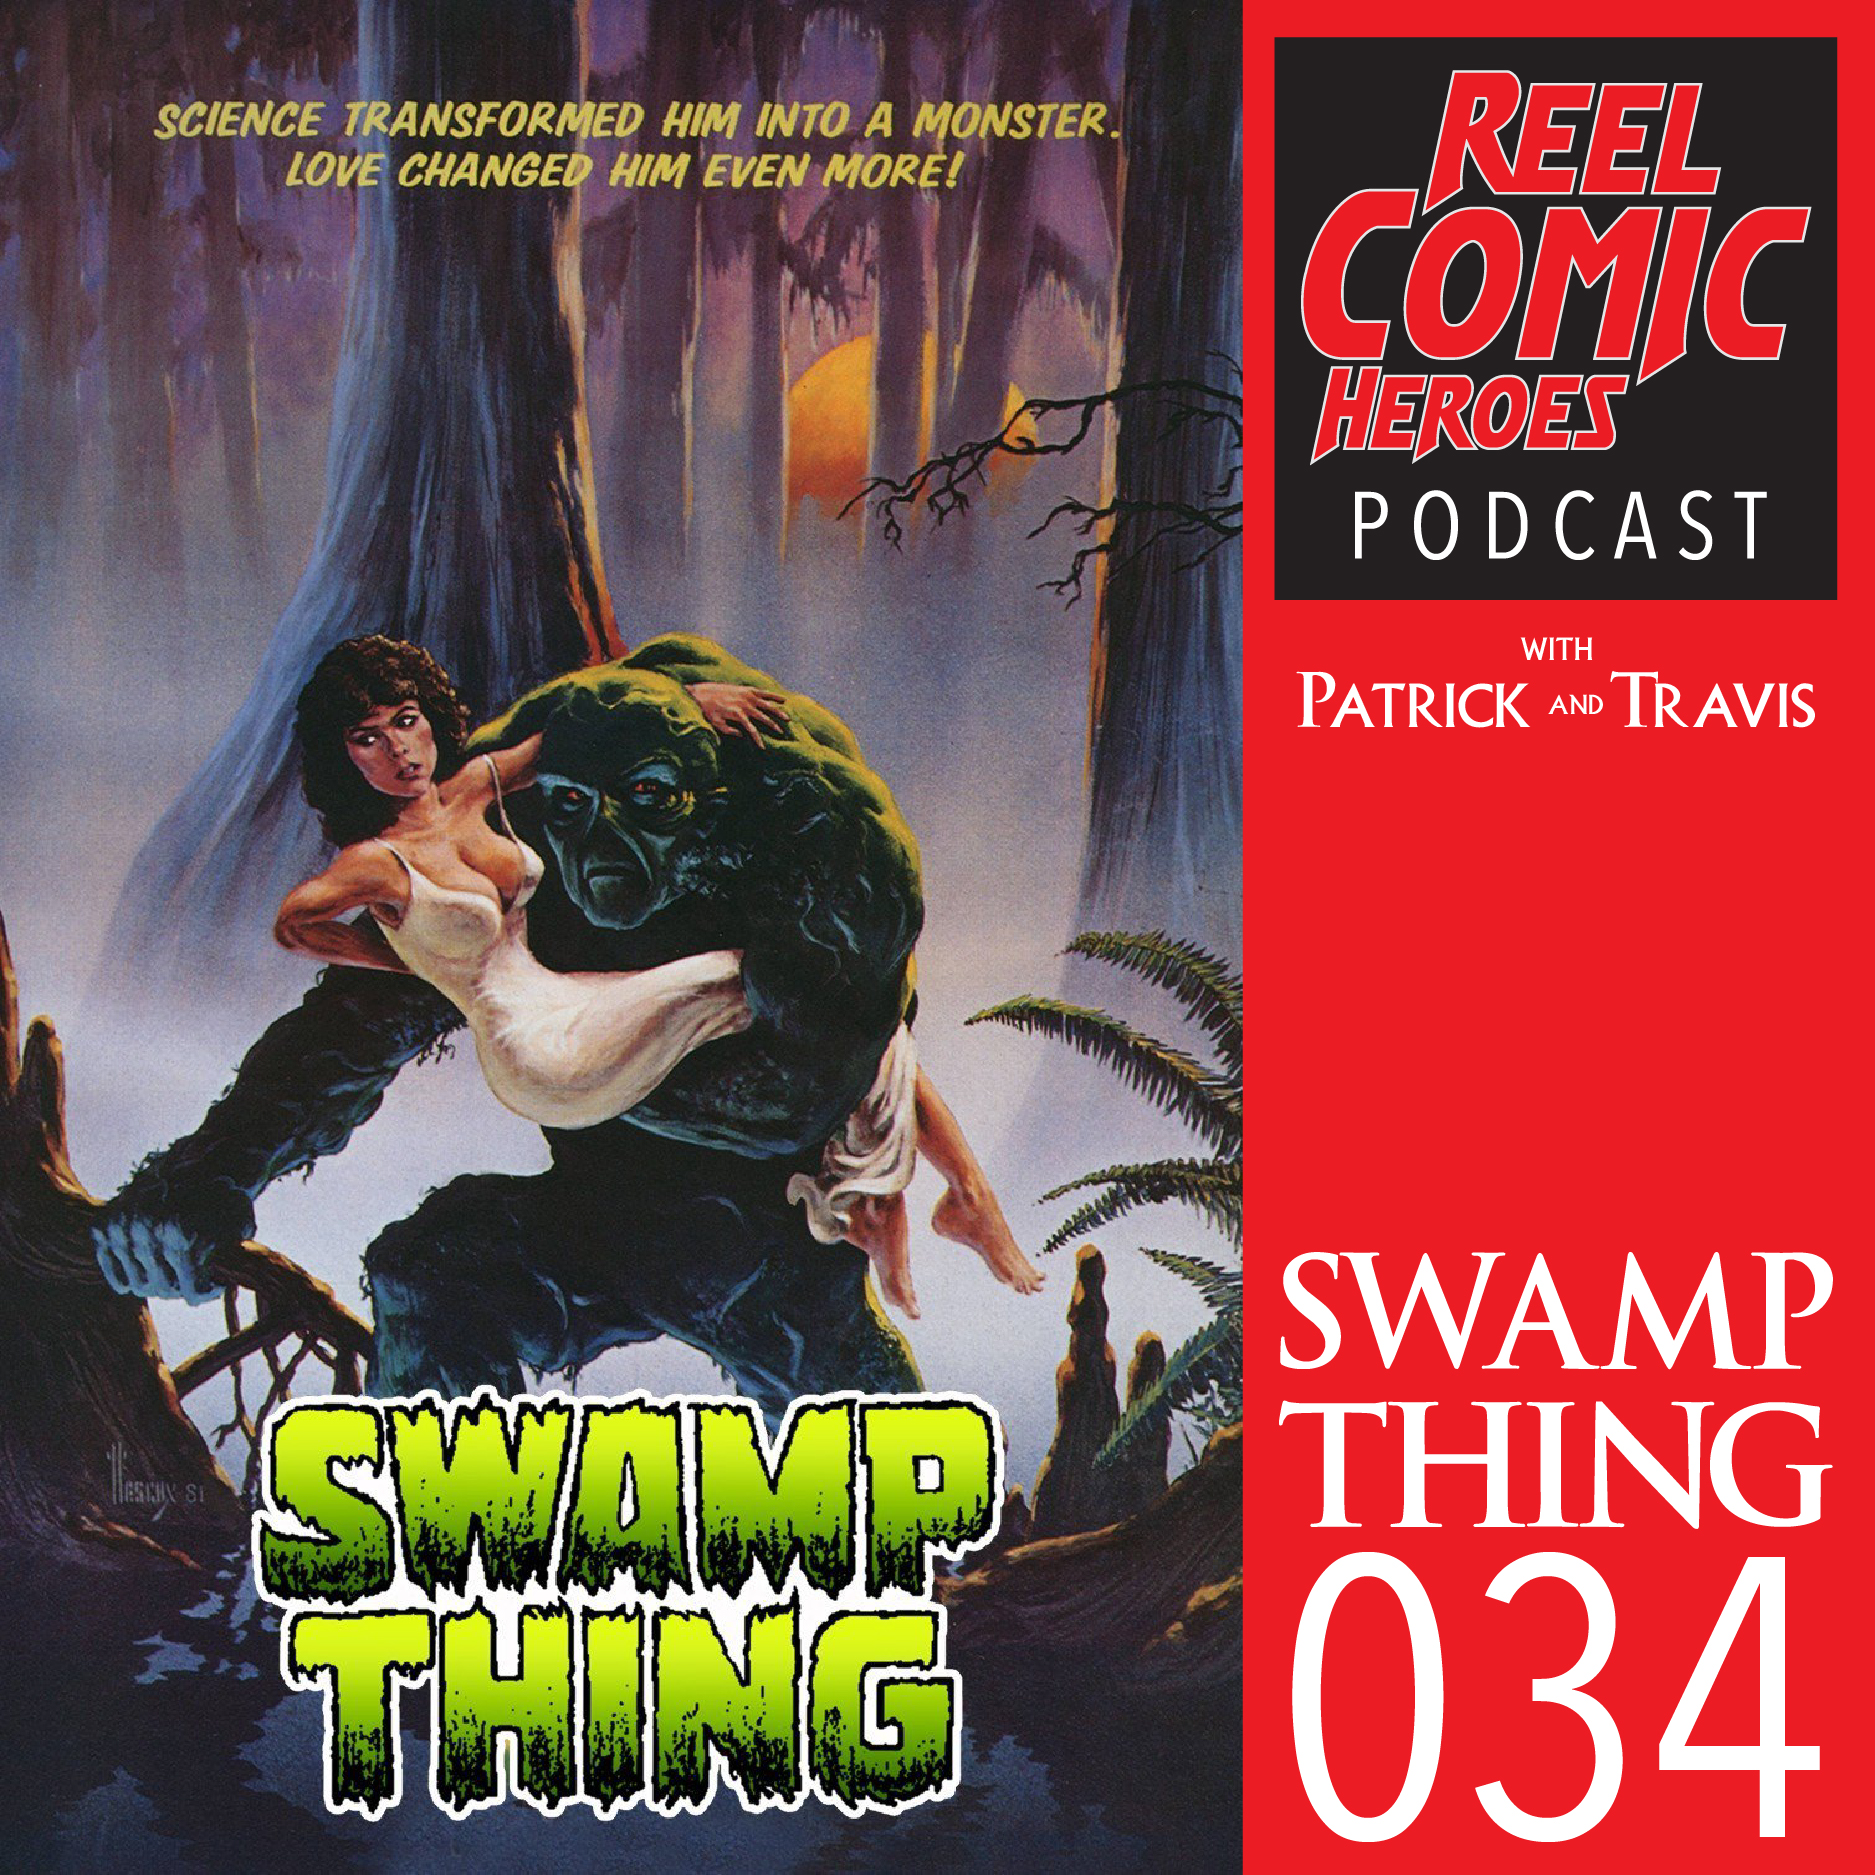 Artwork for Reel Comic Heroes 034 - Swamp Thing with Warner Swopes